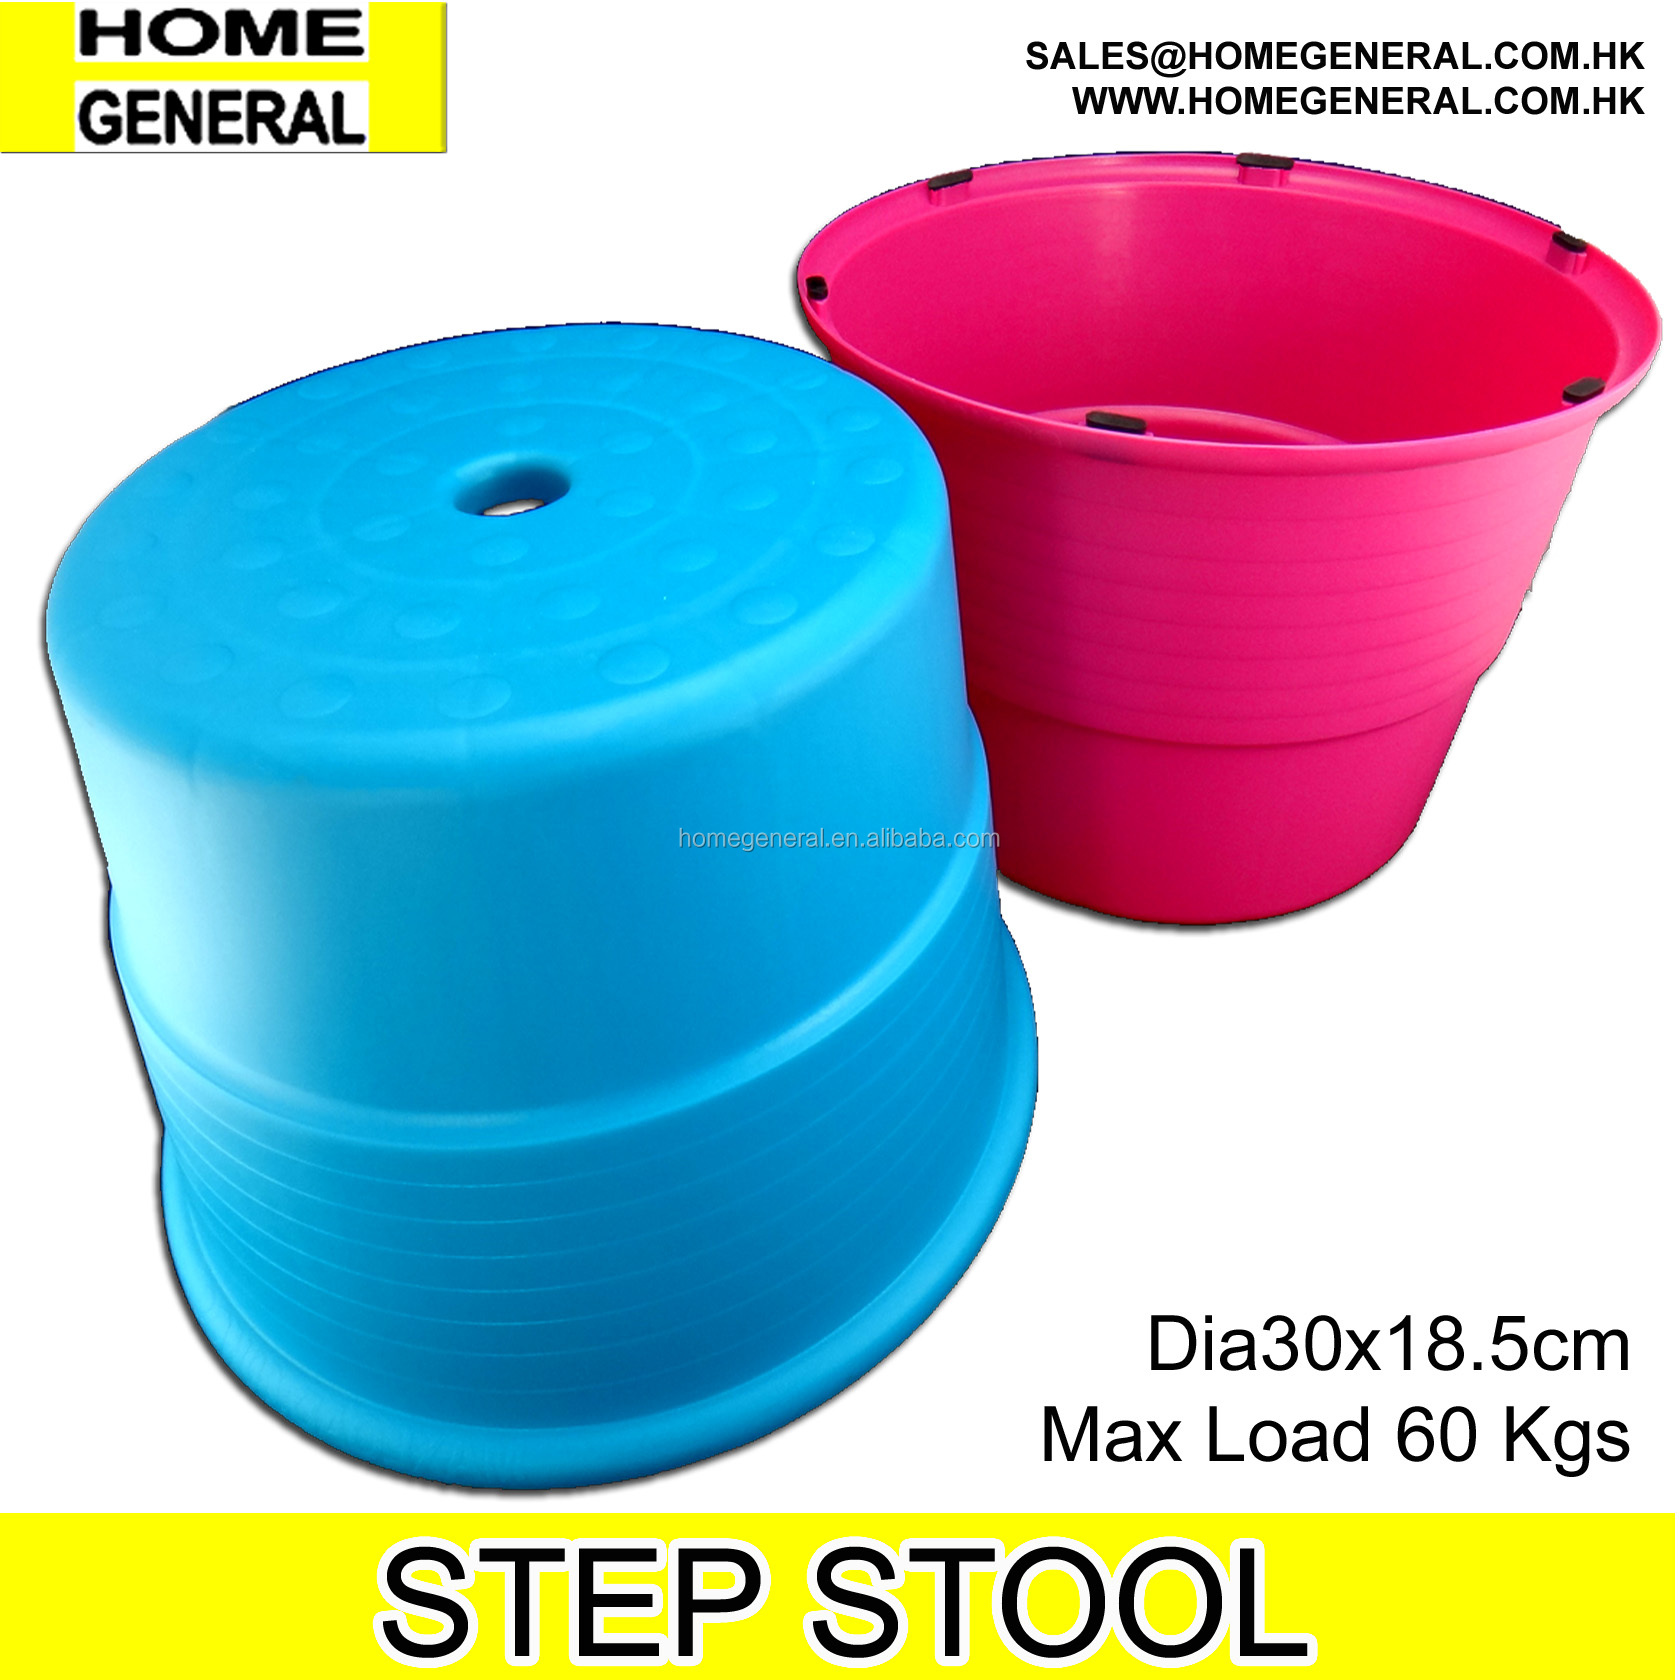 HOME GENERAL PLASTIC STEP STOOL EASY STEP STOOL ANTI SLIP BATHROOM STEP STOOL STEP STOOL FOR KIDS RECTANGULAR STEP STOOL